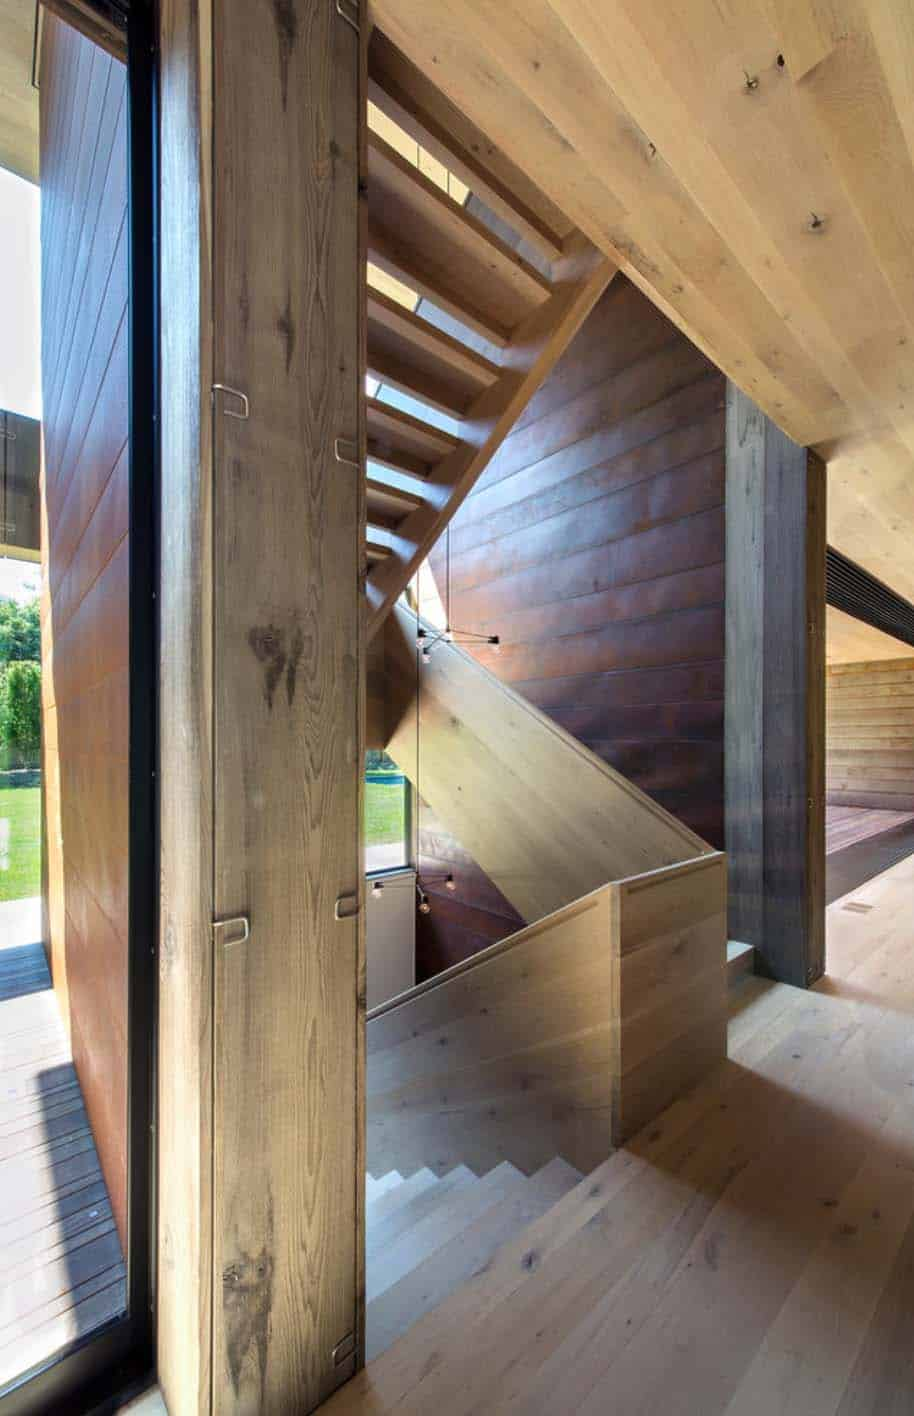 Architecture-Modern-Home-Bates Masi Architects-09-1 Kindesign